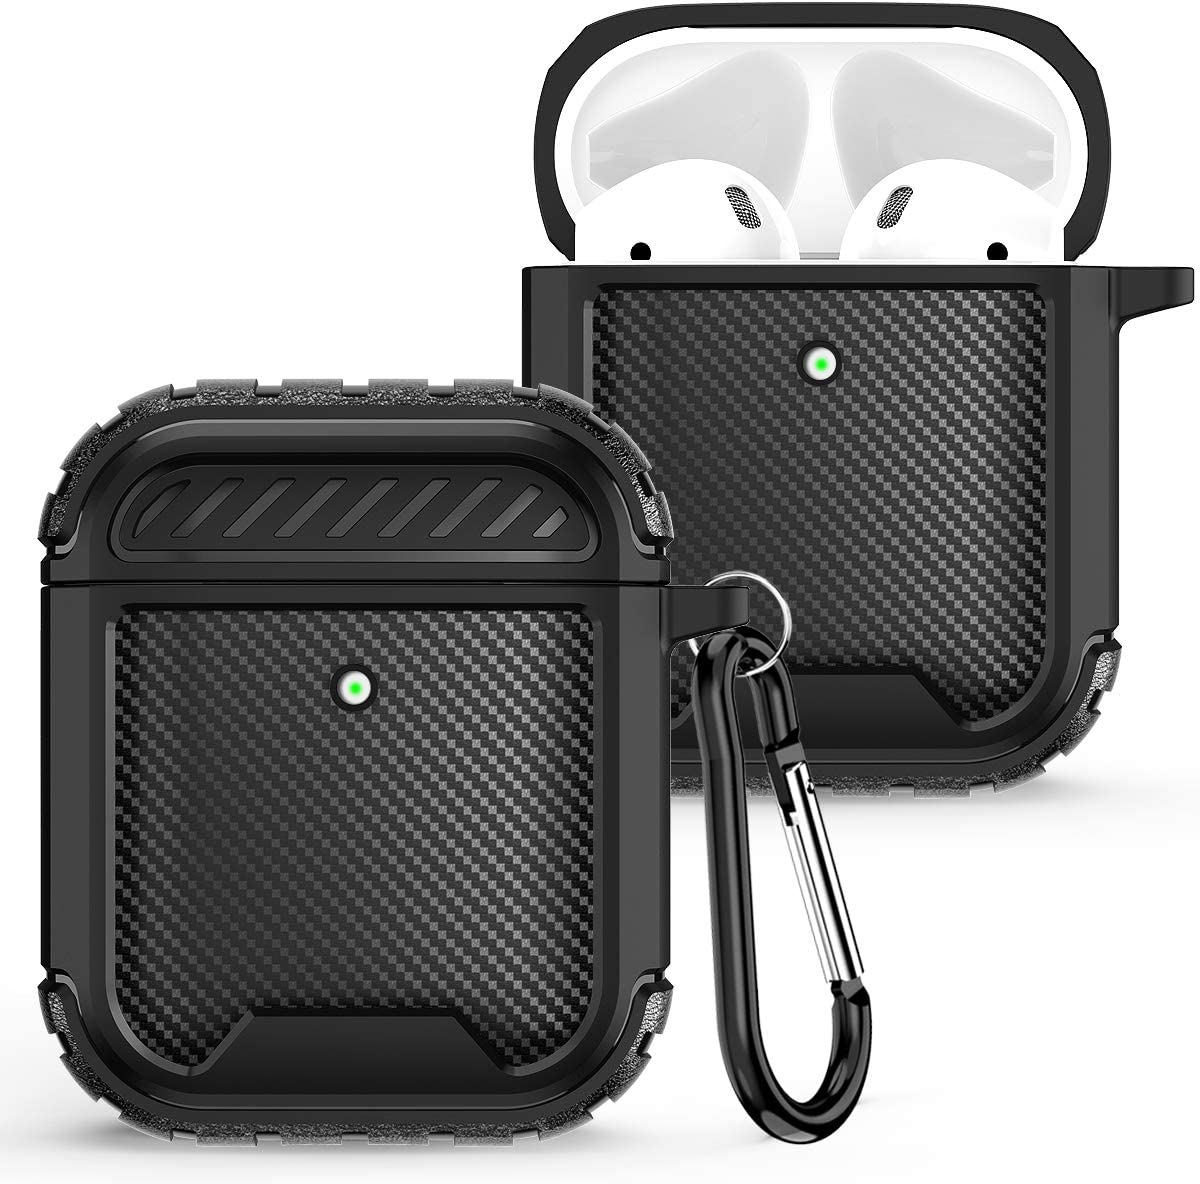 Hocase AirPod Case, Rugged Shockproof TPU 2-Piece Cover Skin Protective Case with Keychain (Front LED Visible) for AirPods 1st Generation 2017/AirPods 2nd Gerneration 2019 - Black